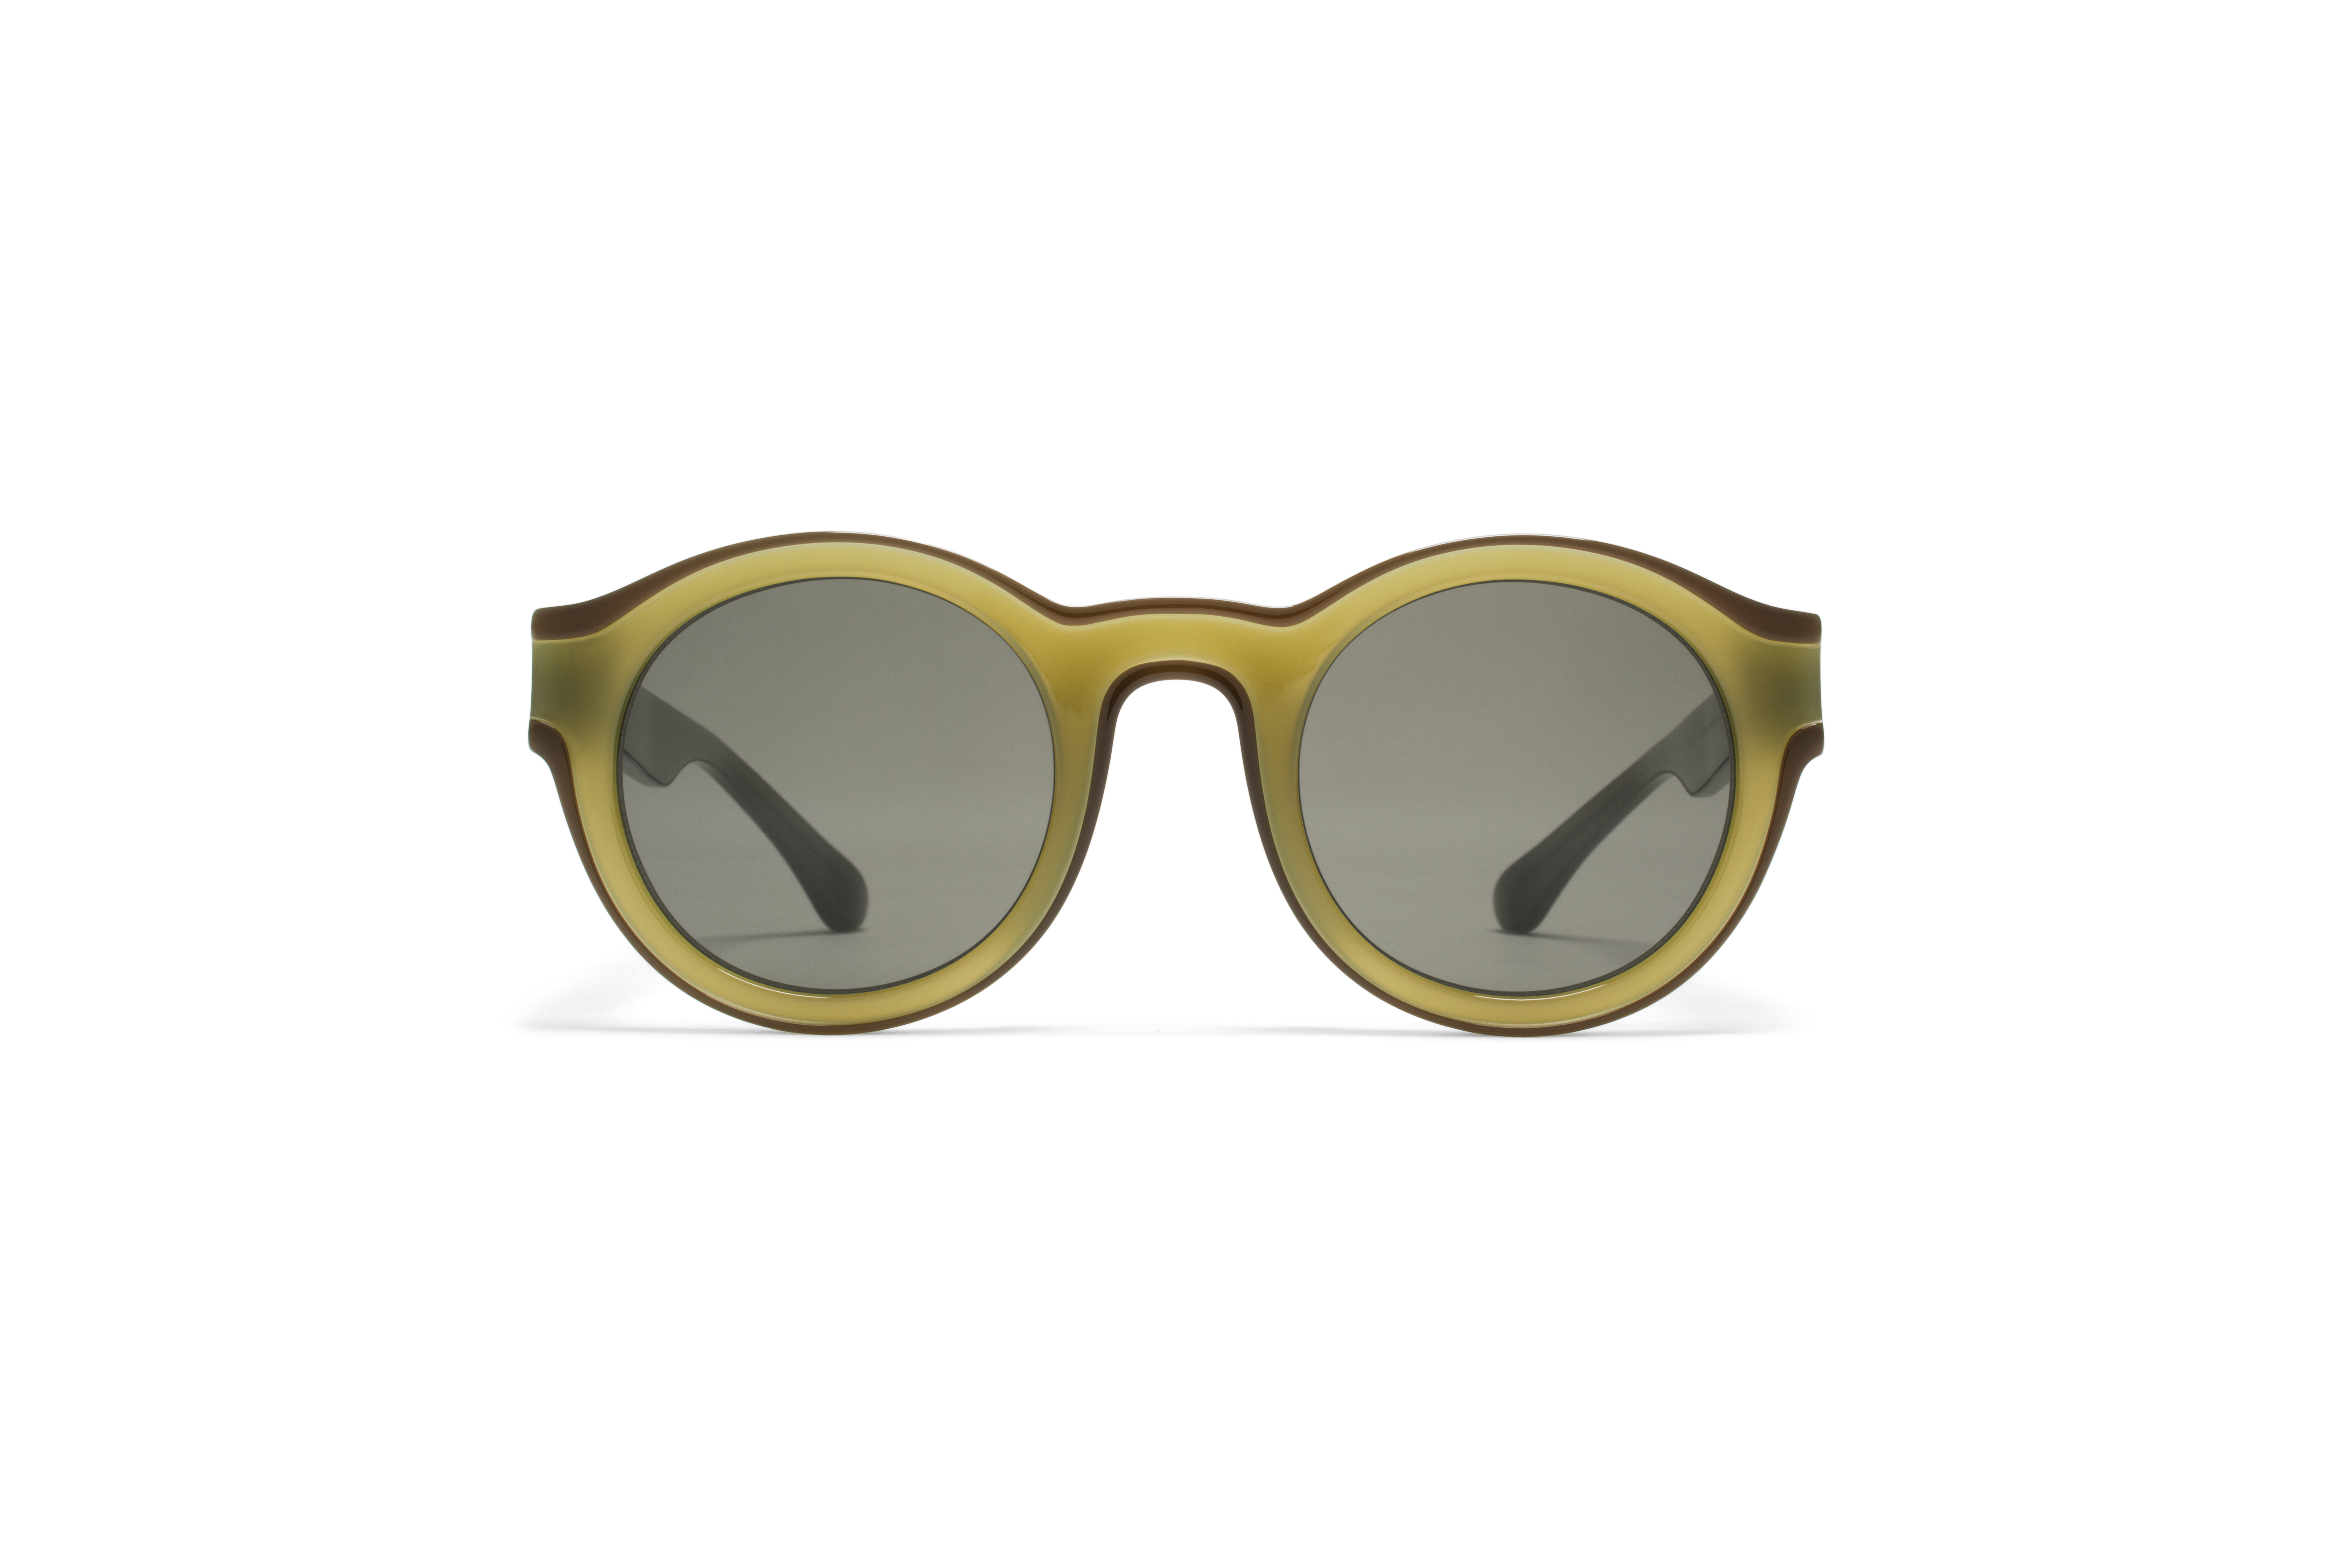 MYKITA Mm Sun Mmdual002 D9 Green Darkbrown Raw G562b877a8fa1e